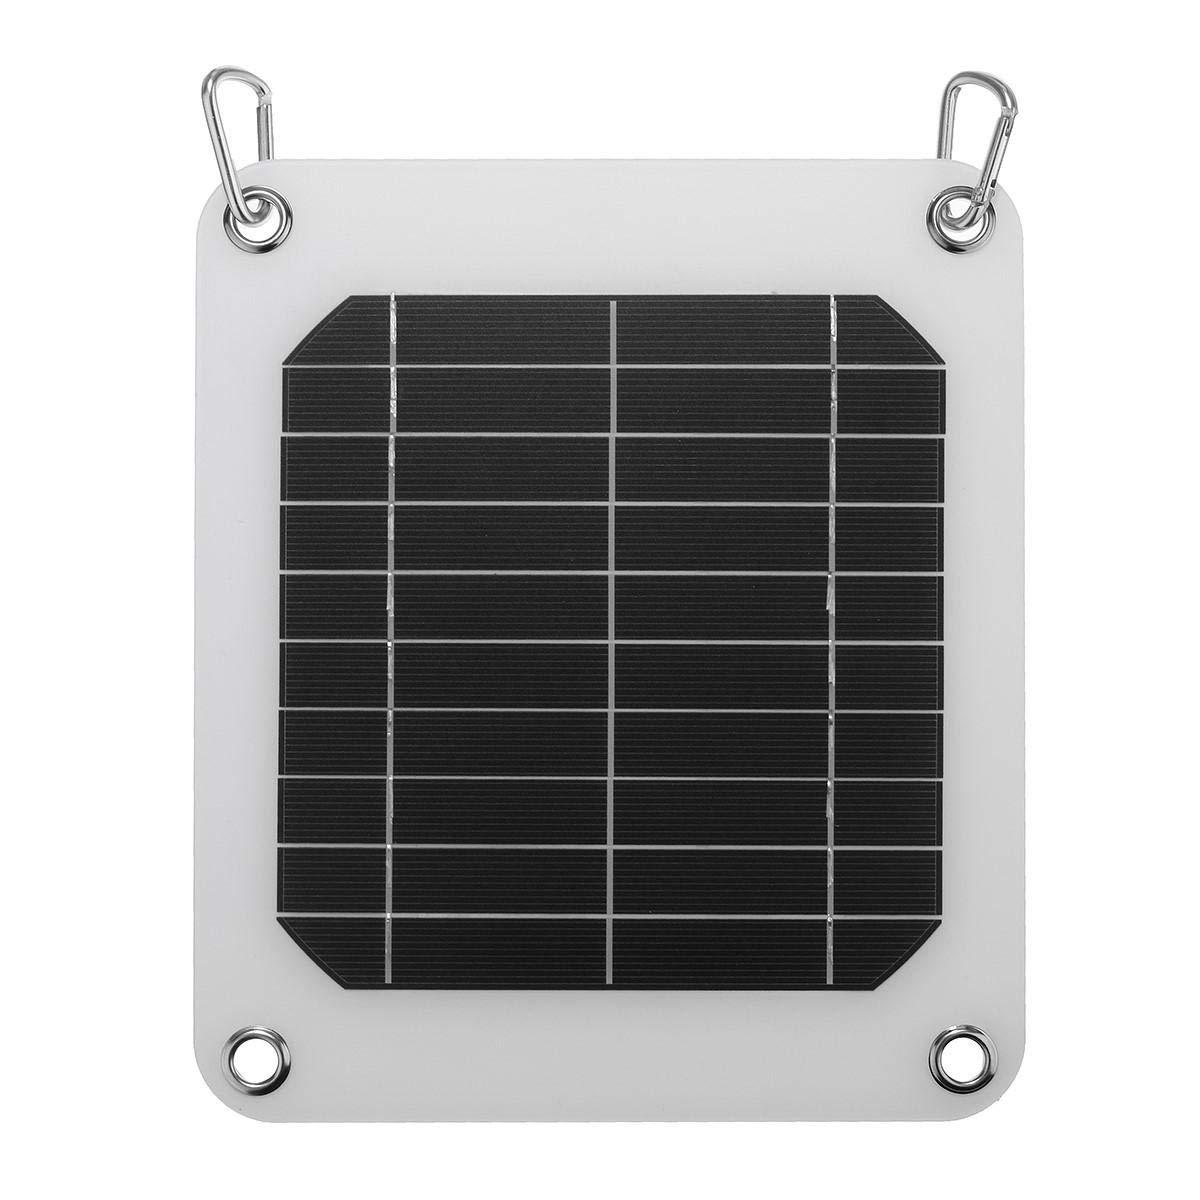 5W/5V Solar Panel Charger For Home Travel Hinking USB Port Phone Charger Battery - Arduino Compatible SCM & DIY Kits Smart Robot & Solar Panel - 1 x Solar Panel